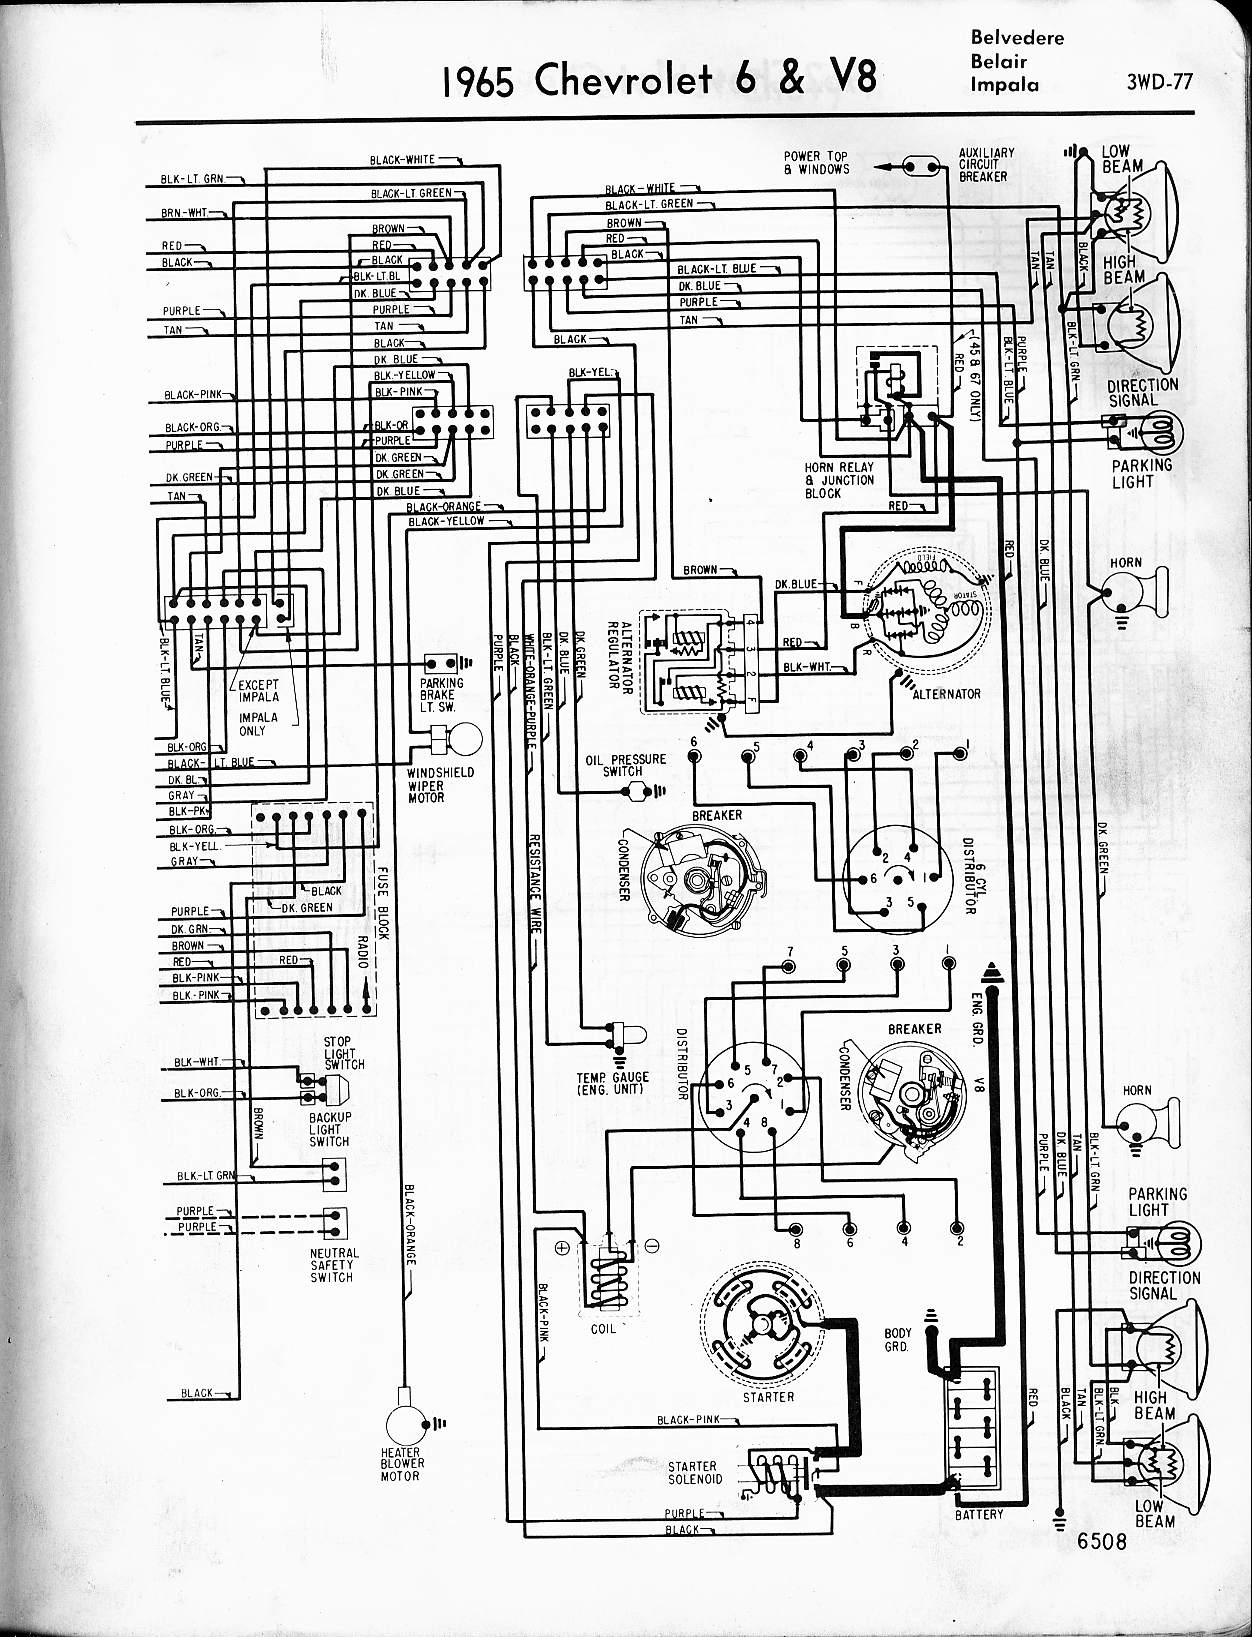 1969 Chevelle Wiring Harness | Schematic Diagram on fuel tank regulator, fuel tank wires on gq, fuel tank relay, fuel tank solenoid, fuel tank electrical, locks wiring diagram, transmission wiring diagram, power brake wiring diagram, oil tank vent whistle diagram, fuel tank ford, injector wiring diagram, fan clutch wiring diagram, valve wiring diagram, fuel tank lights, a/c compressor wiring diagram, slave cylinder wiring diagram, engine wiring diagram, heater motor wiring diagram, fuel tank distributor, water pump wiring diagram,